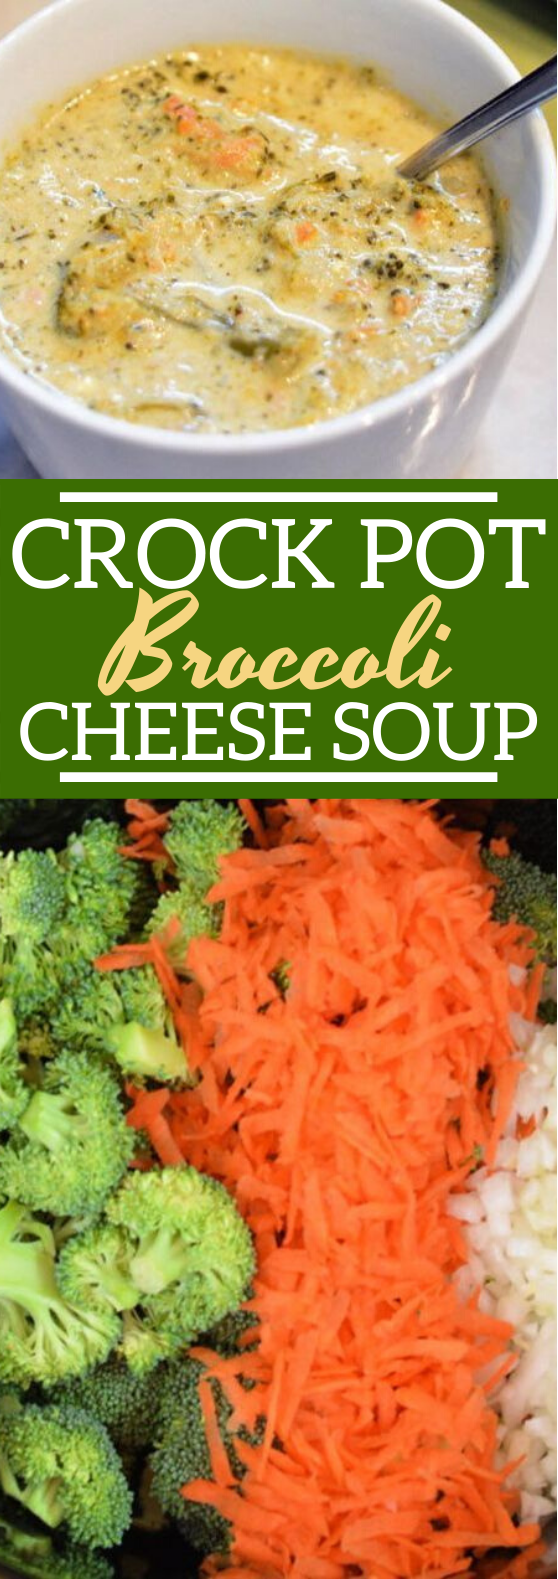 Crockpot Broccoli Cheese Soup #dinner #soup #vegetarian #comfortfood #instantpot